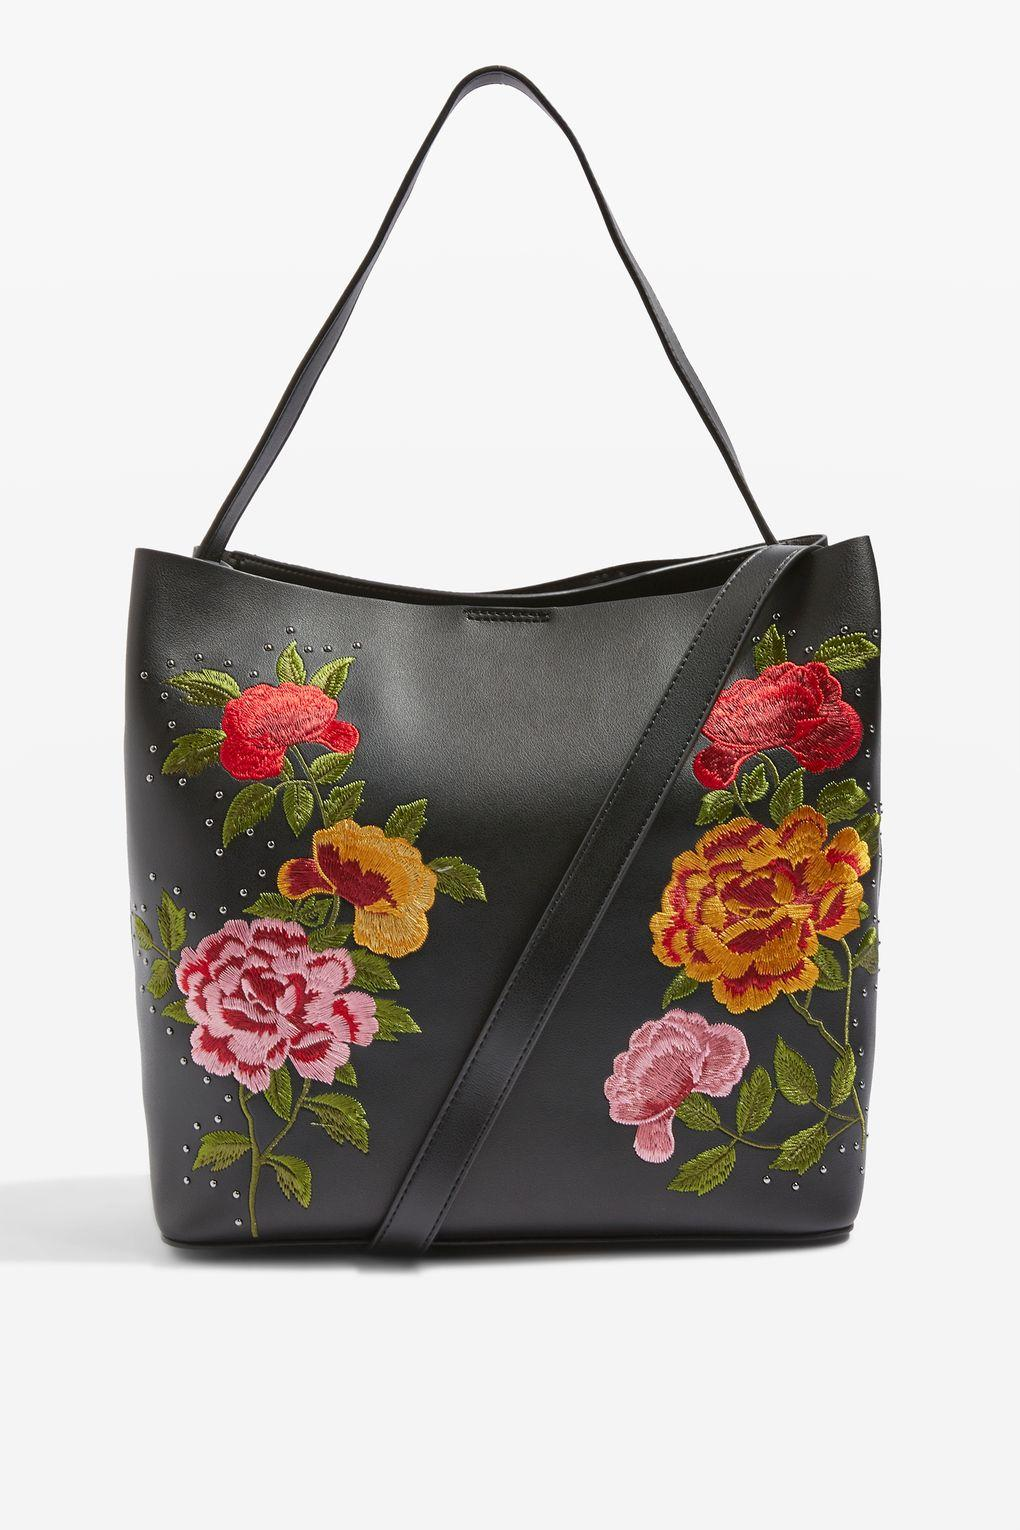 Topshop Safire Floral Embroidered Slouch Tote Bag In Black | Lyst